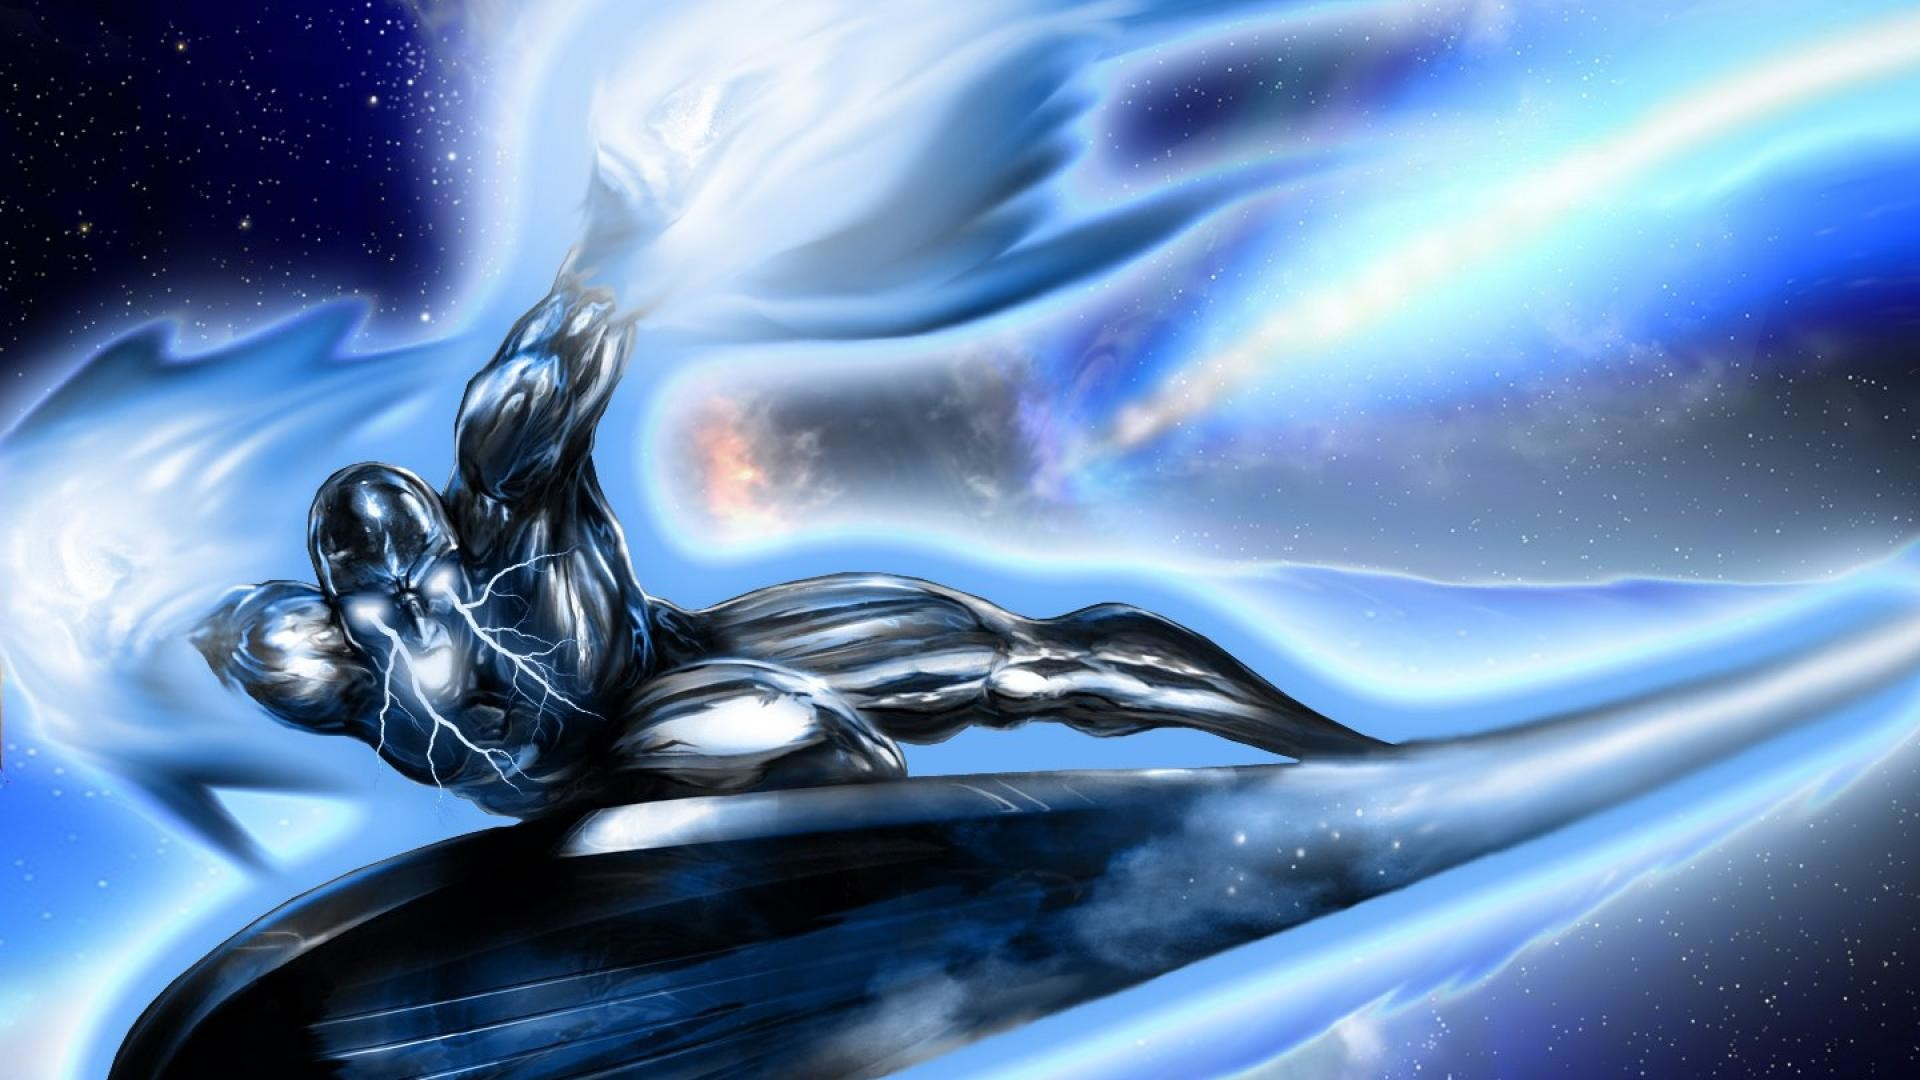 1920x1080 Silver Surfer Wallpaper